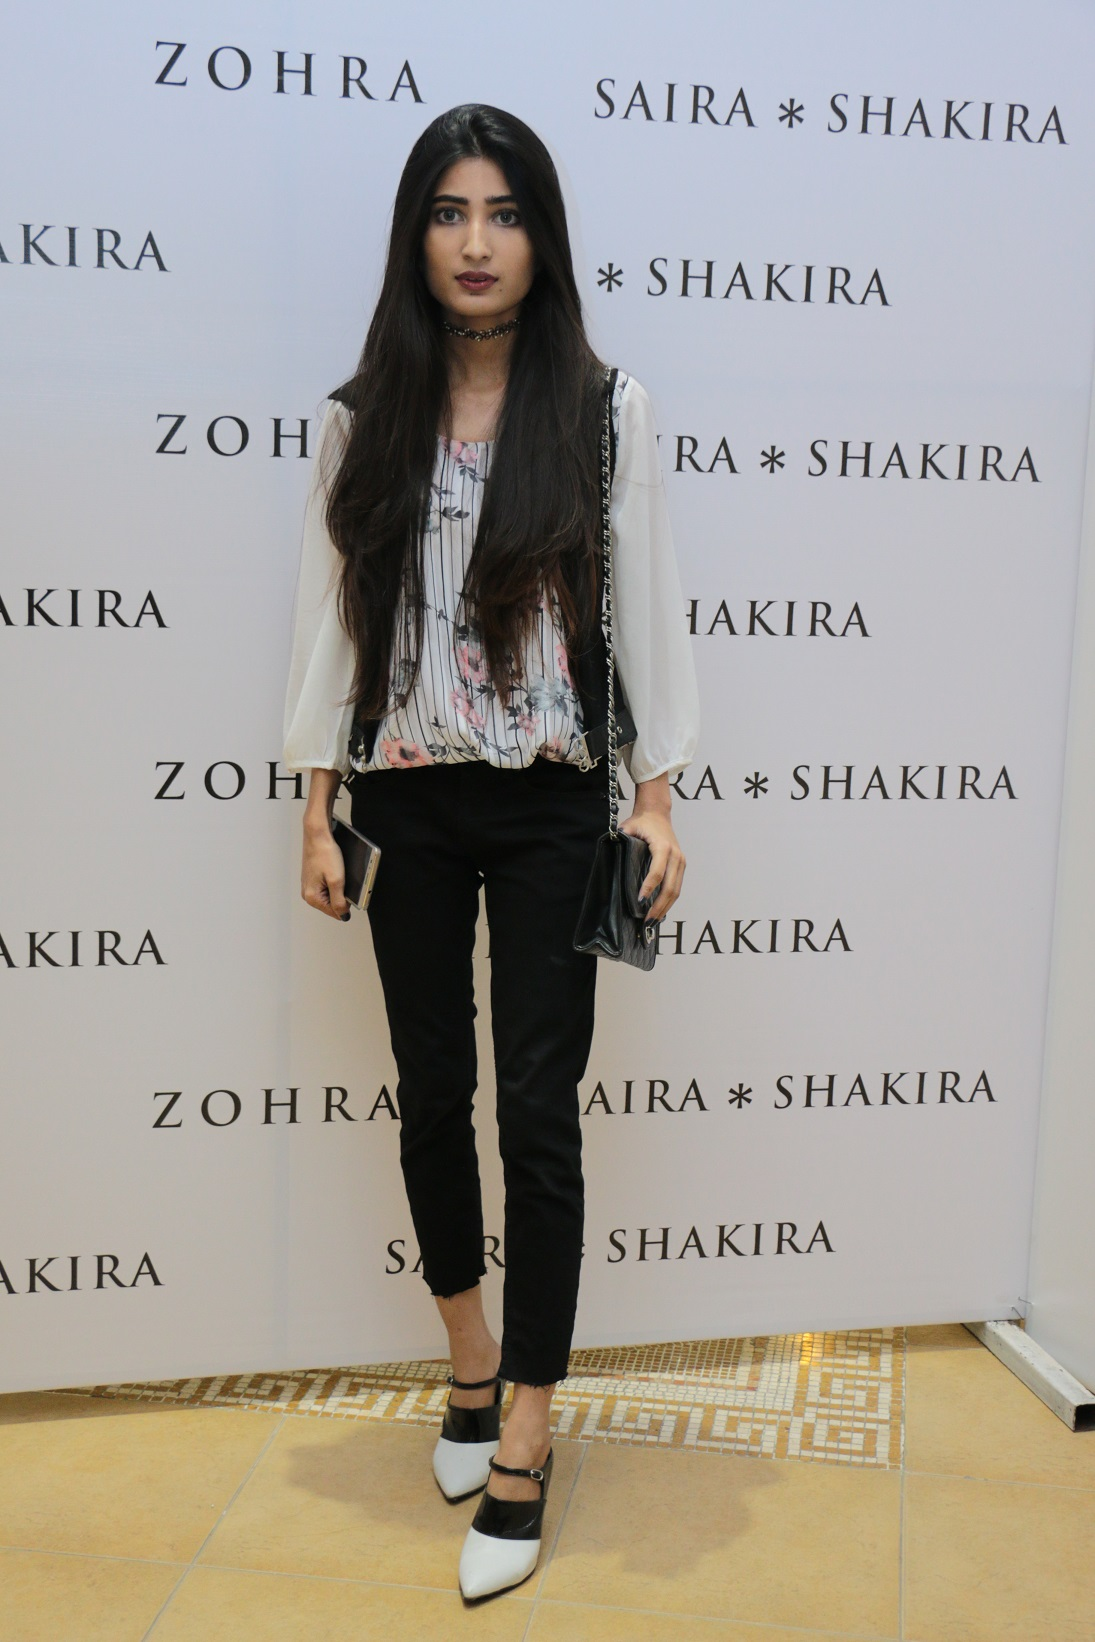 All About Zohra Sunday